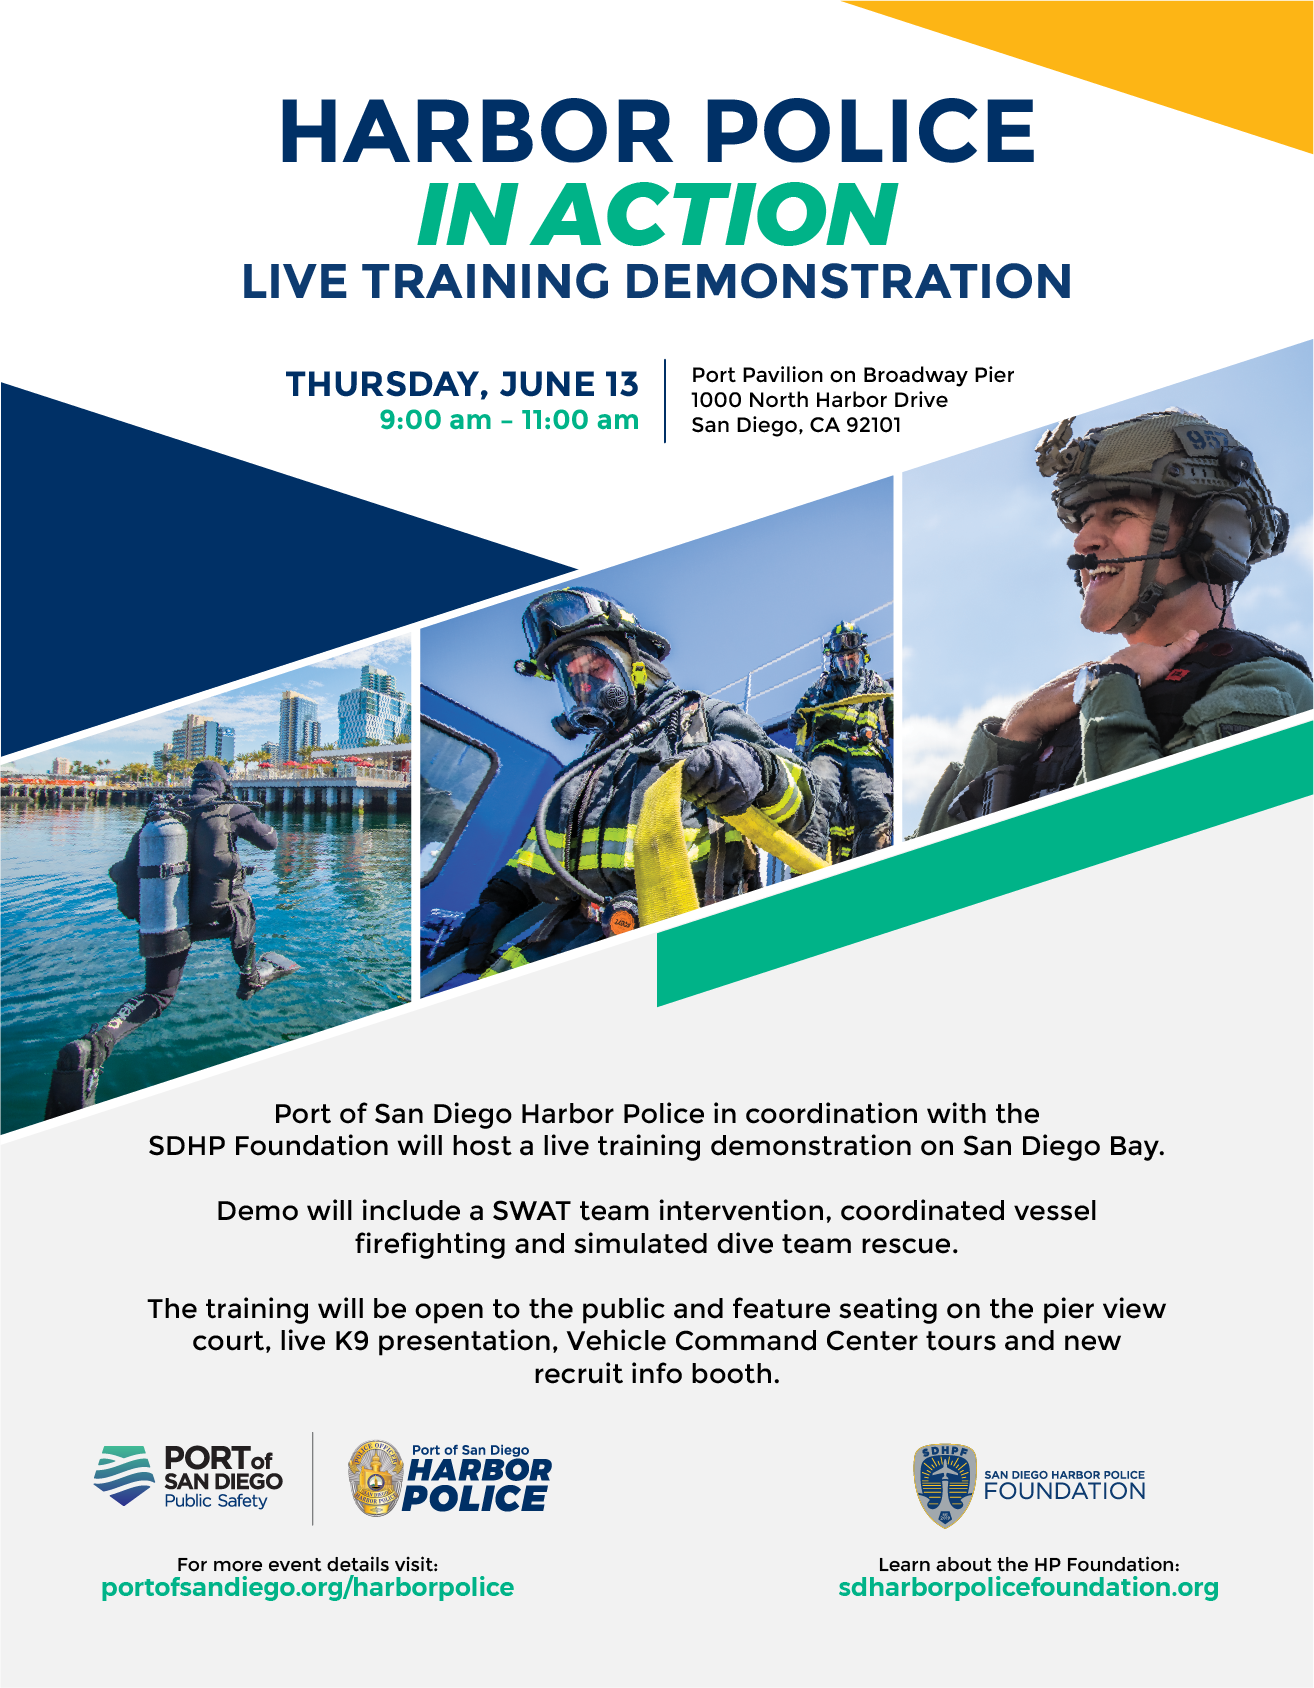 See the Harbor Police in Action | Port of San Diego